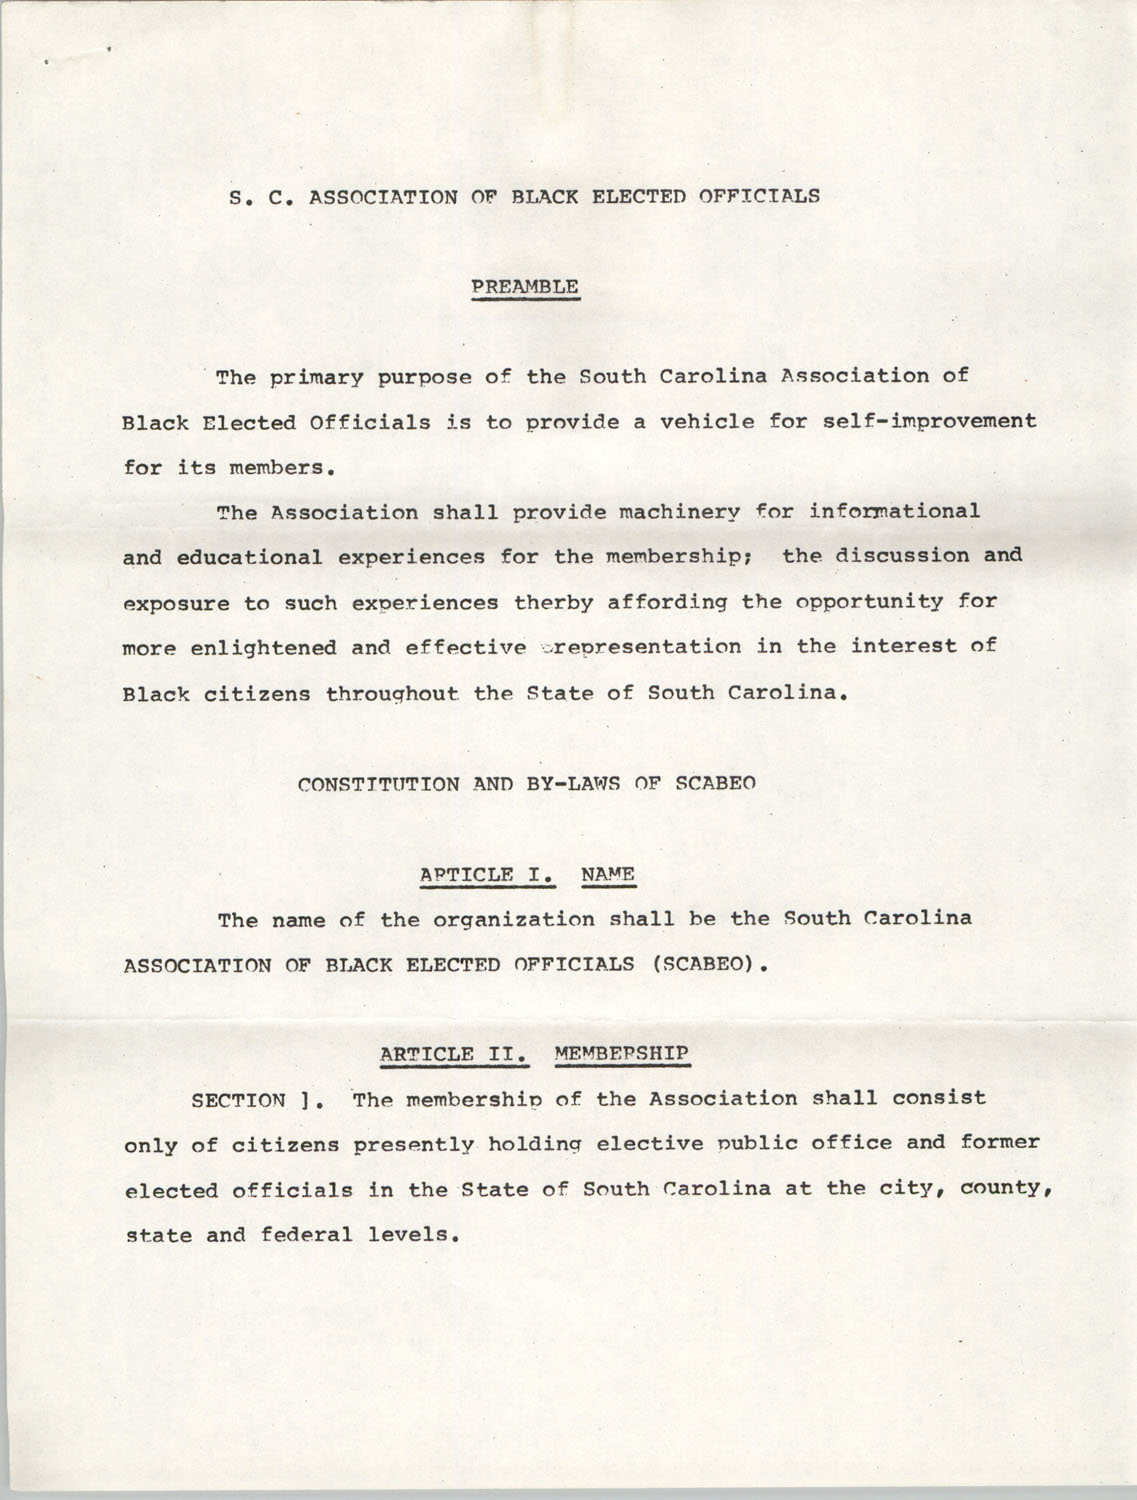 Constitution and By-Laws of S.C. Association of Black Elected Officials